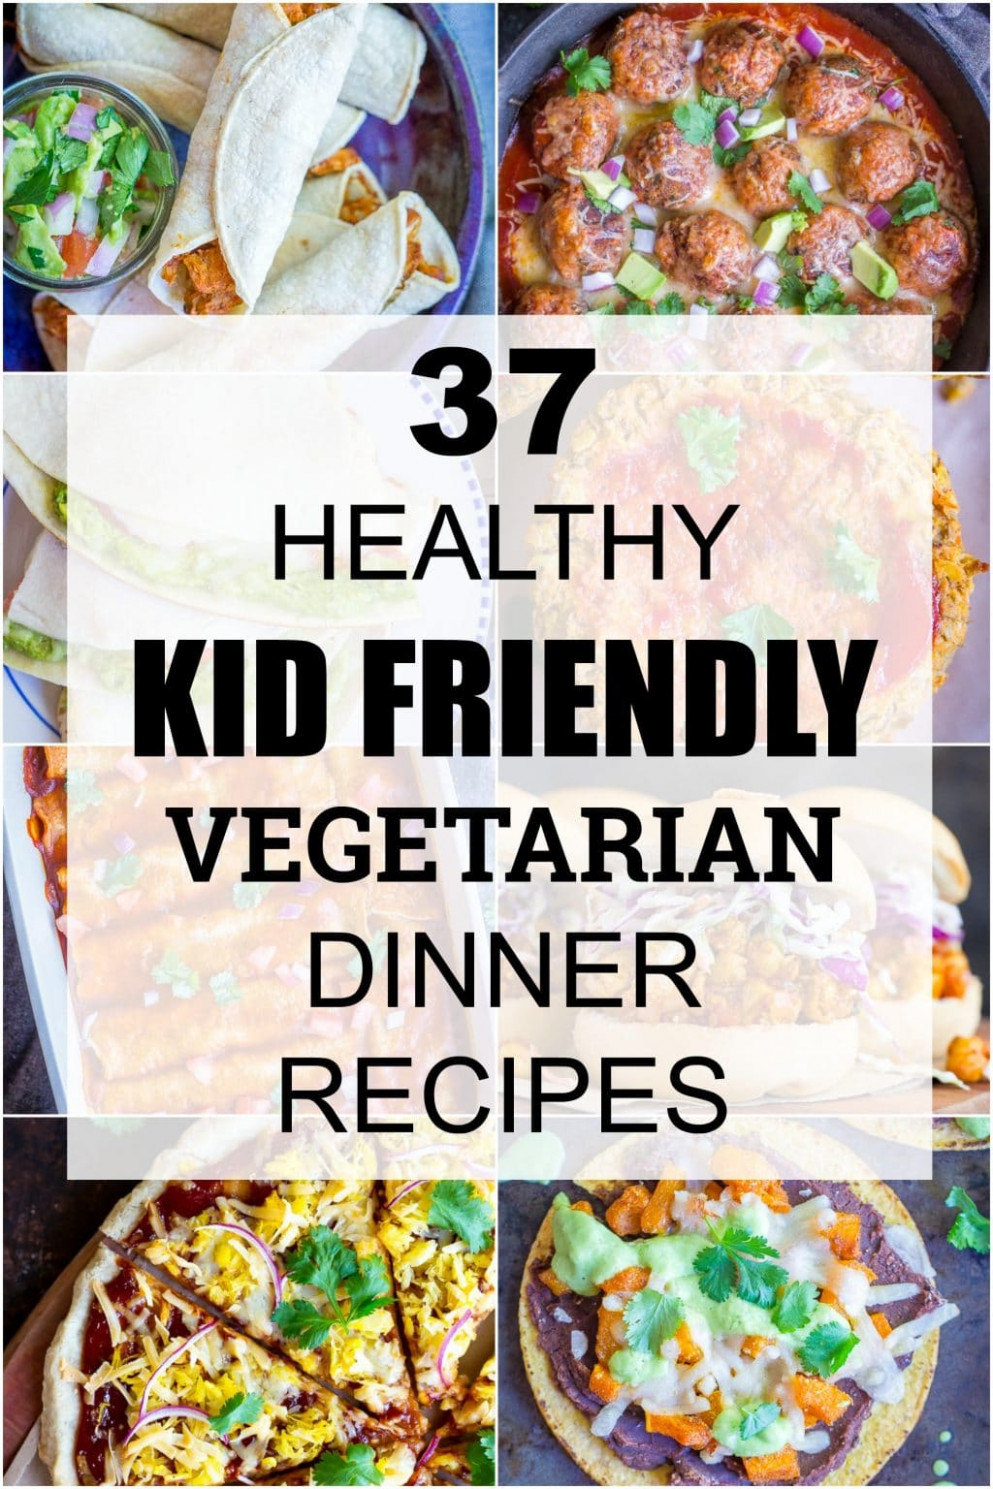 10 Healthy Kid Friendly Vegetarian Dinner Recipes - She ..